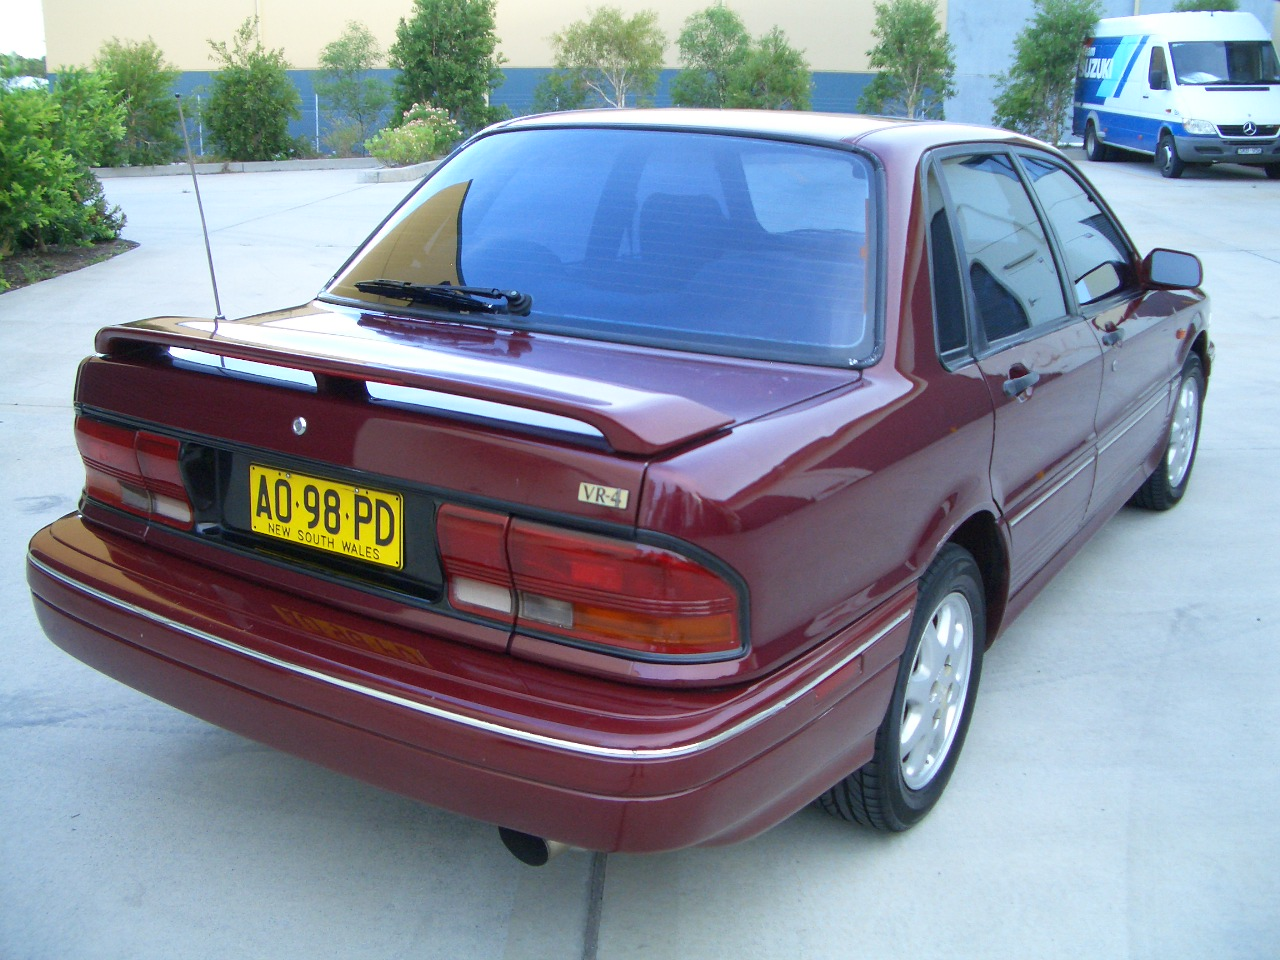 1992 mitsubishi galant vr4 awd manual 5000 ono for sale private whole cars only sau. Black Bedroom Furniture Sets. Home Design Ideas